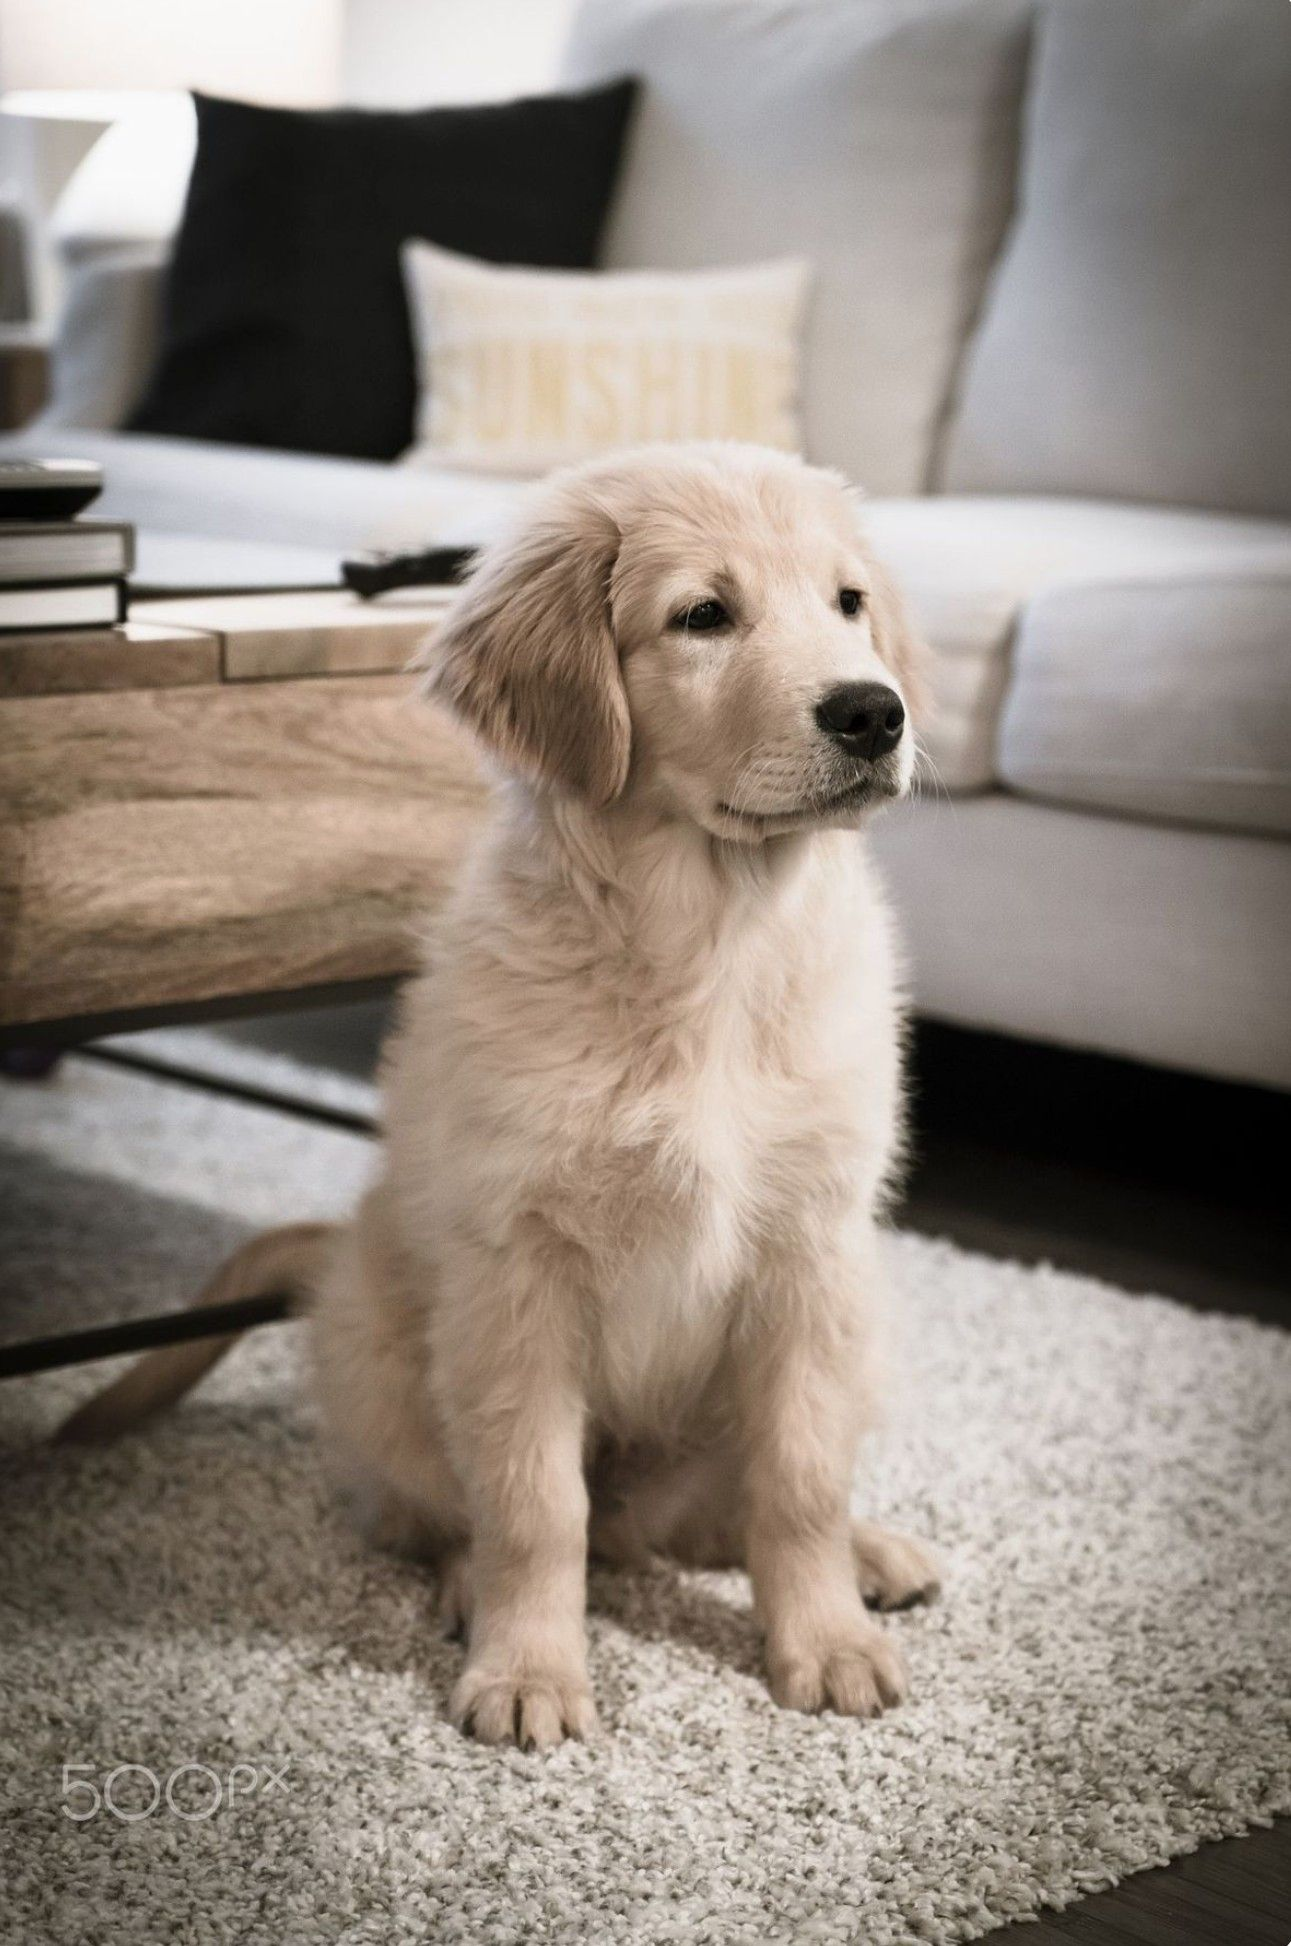 Pin By Hayley Clark On Dog Retriever Puppy Dogs Golden